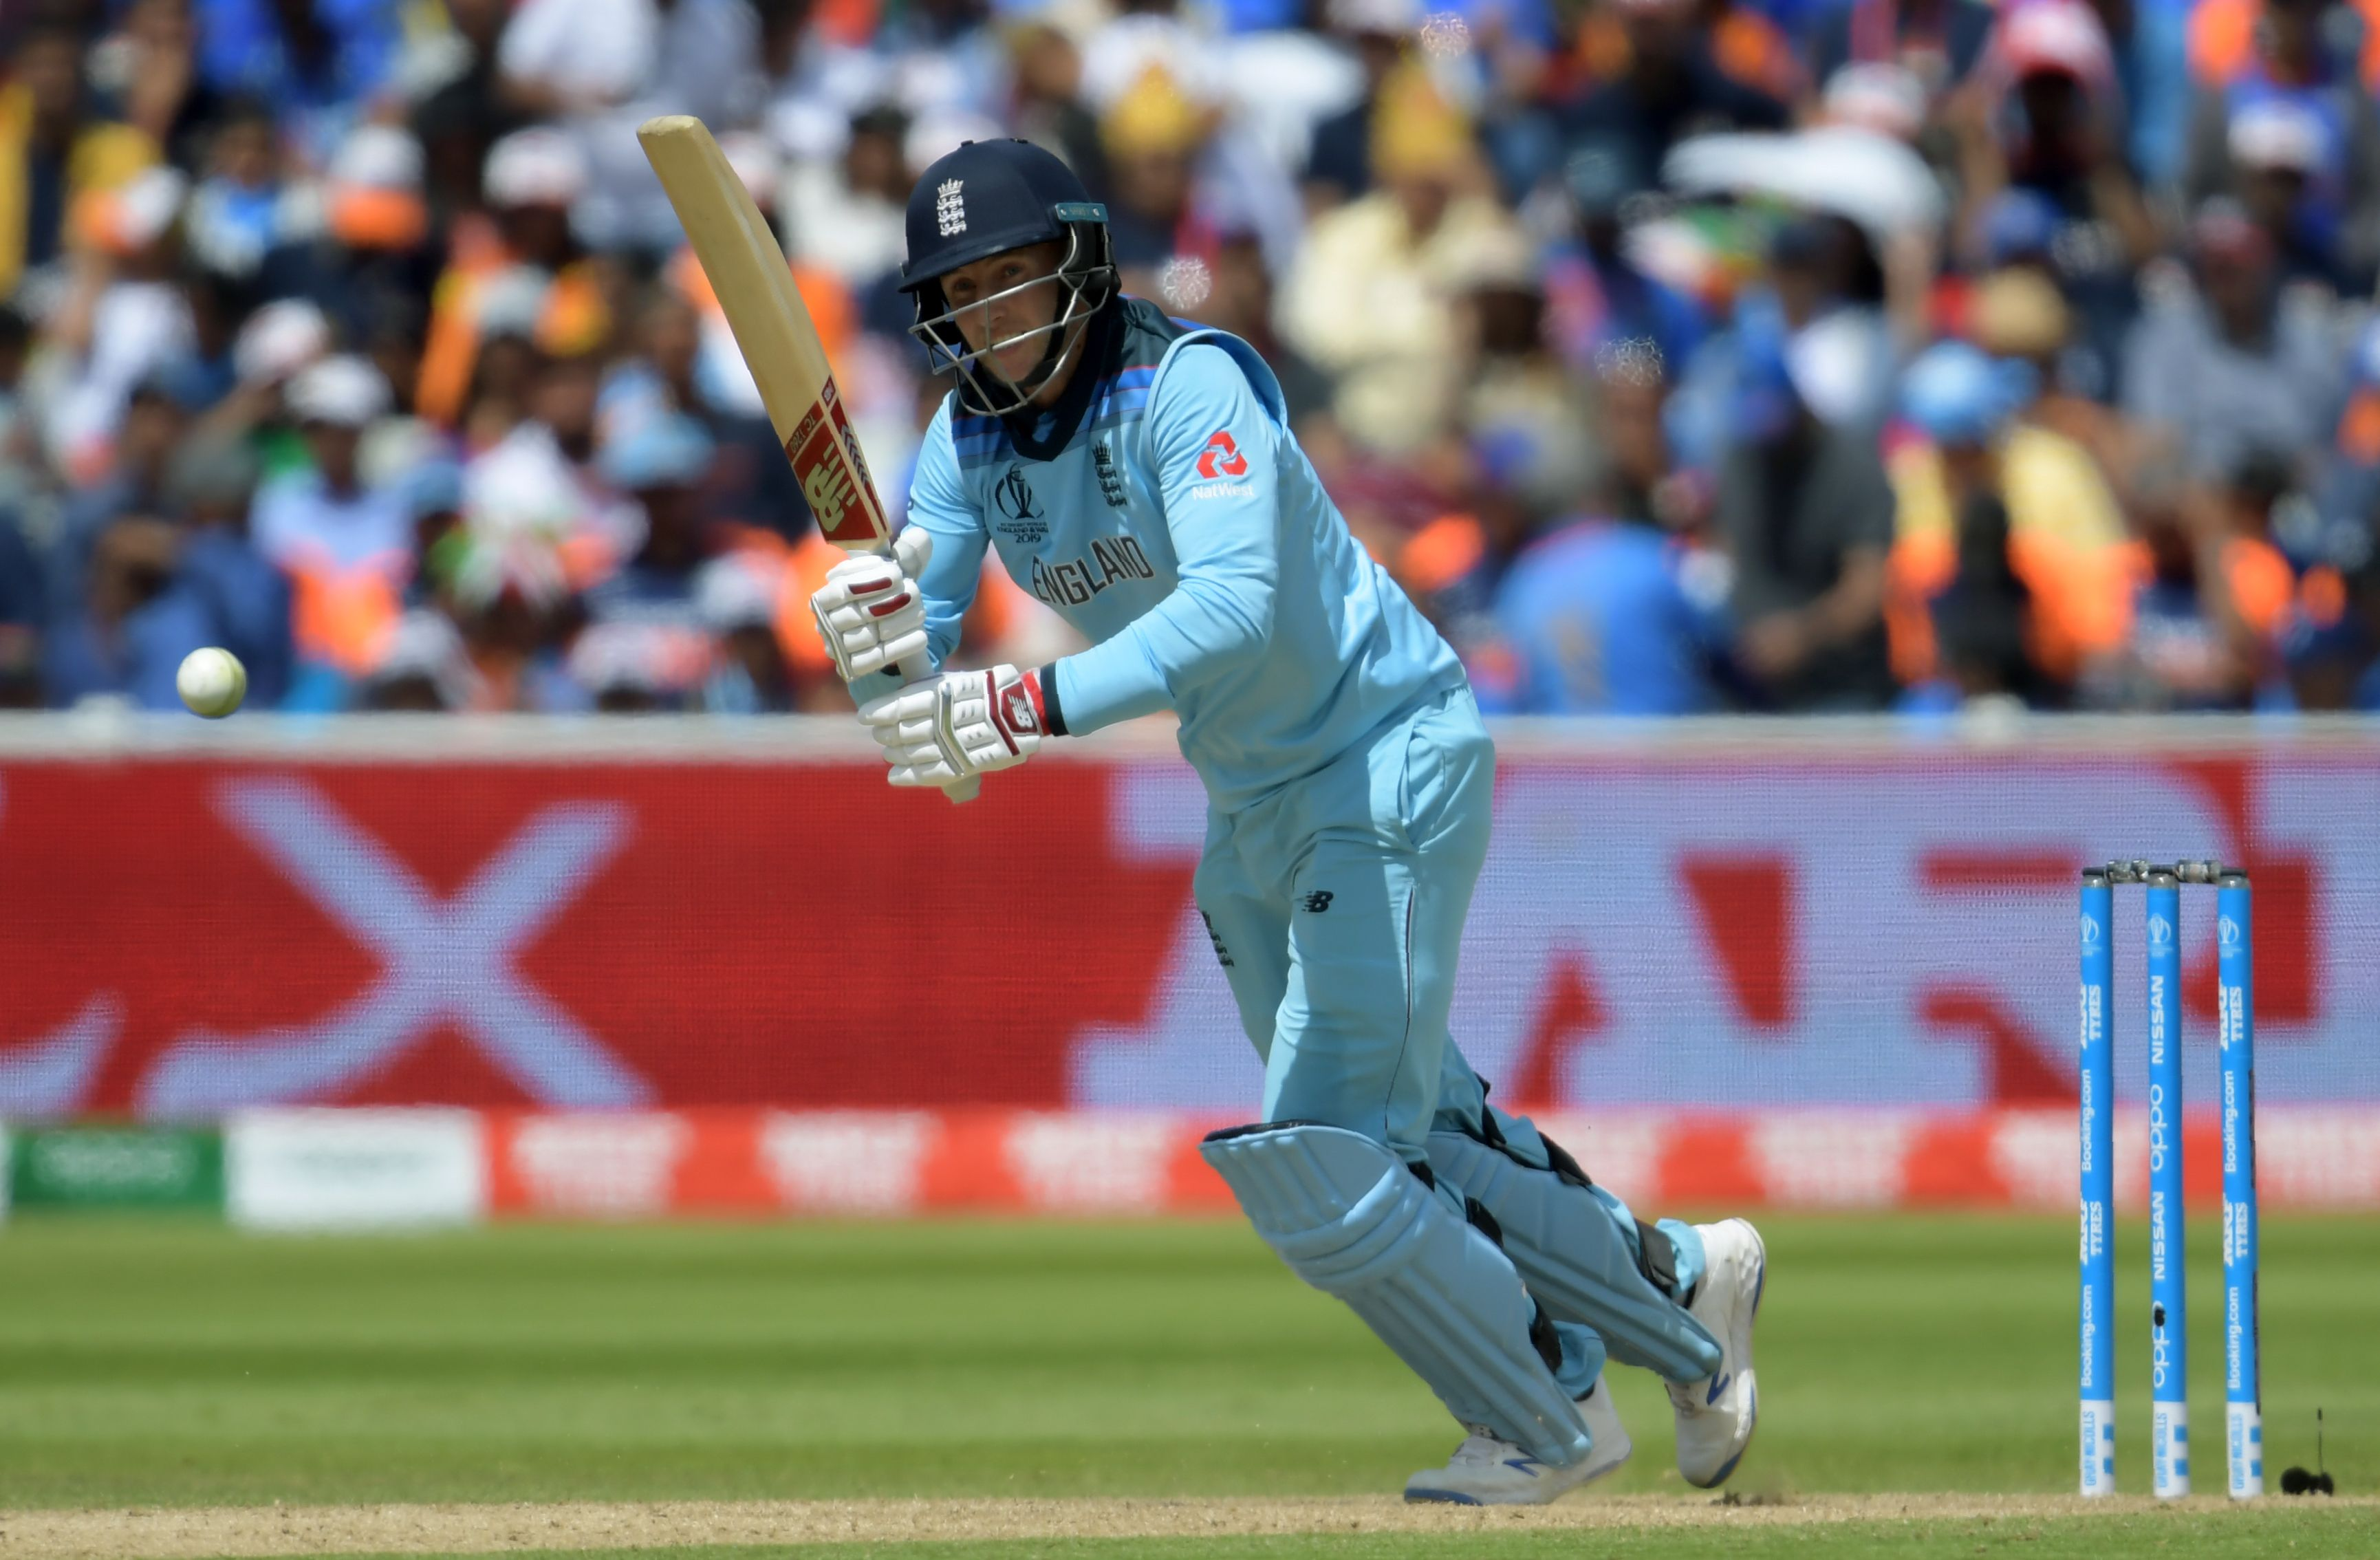 England vs New Zealand Cricket World Cup Preview, Predictions